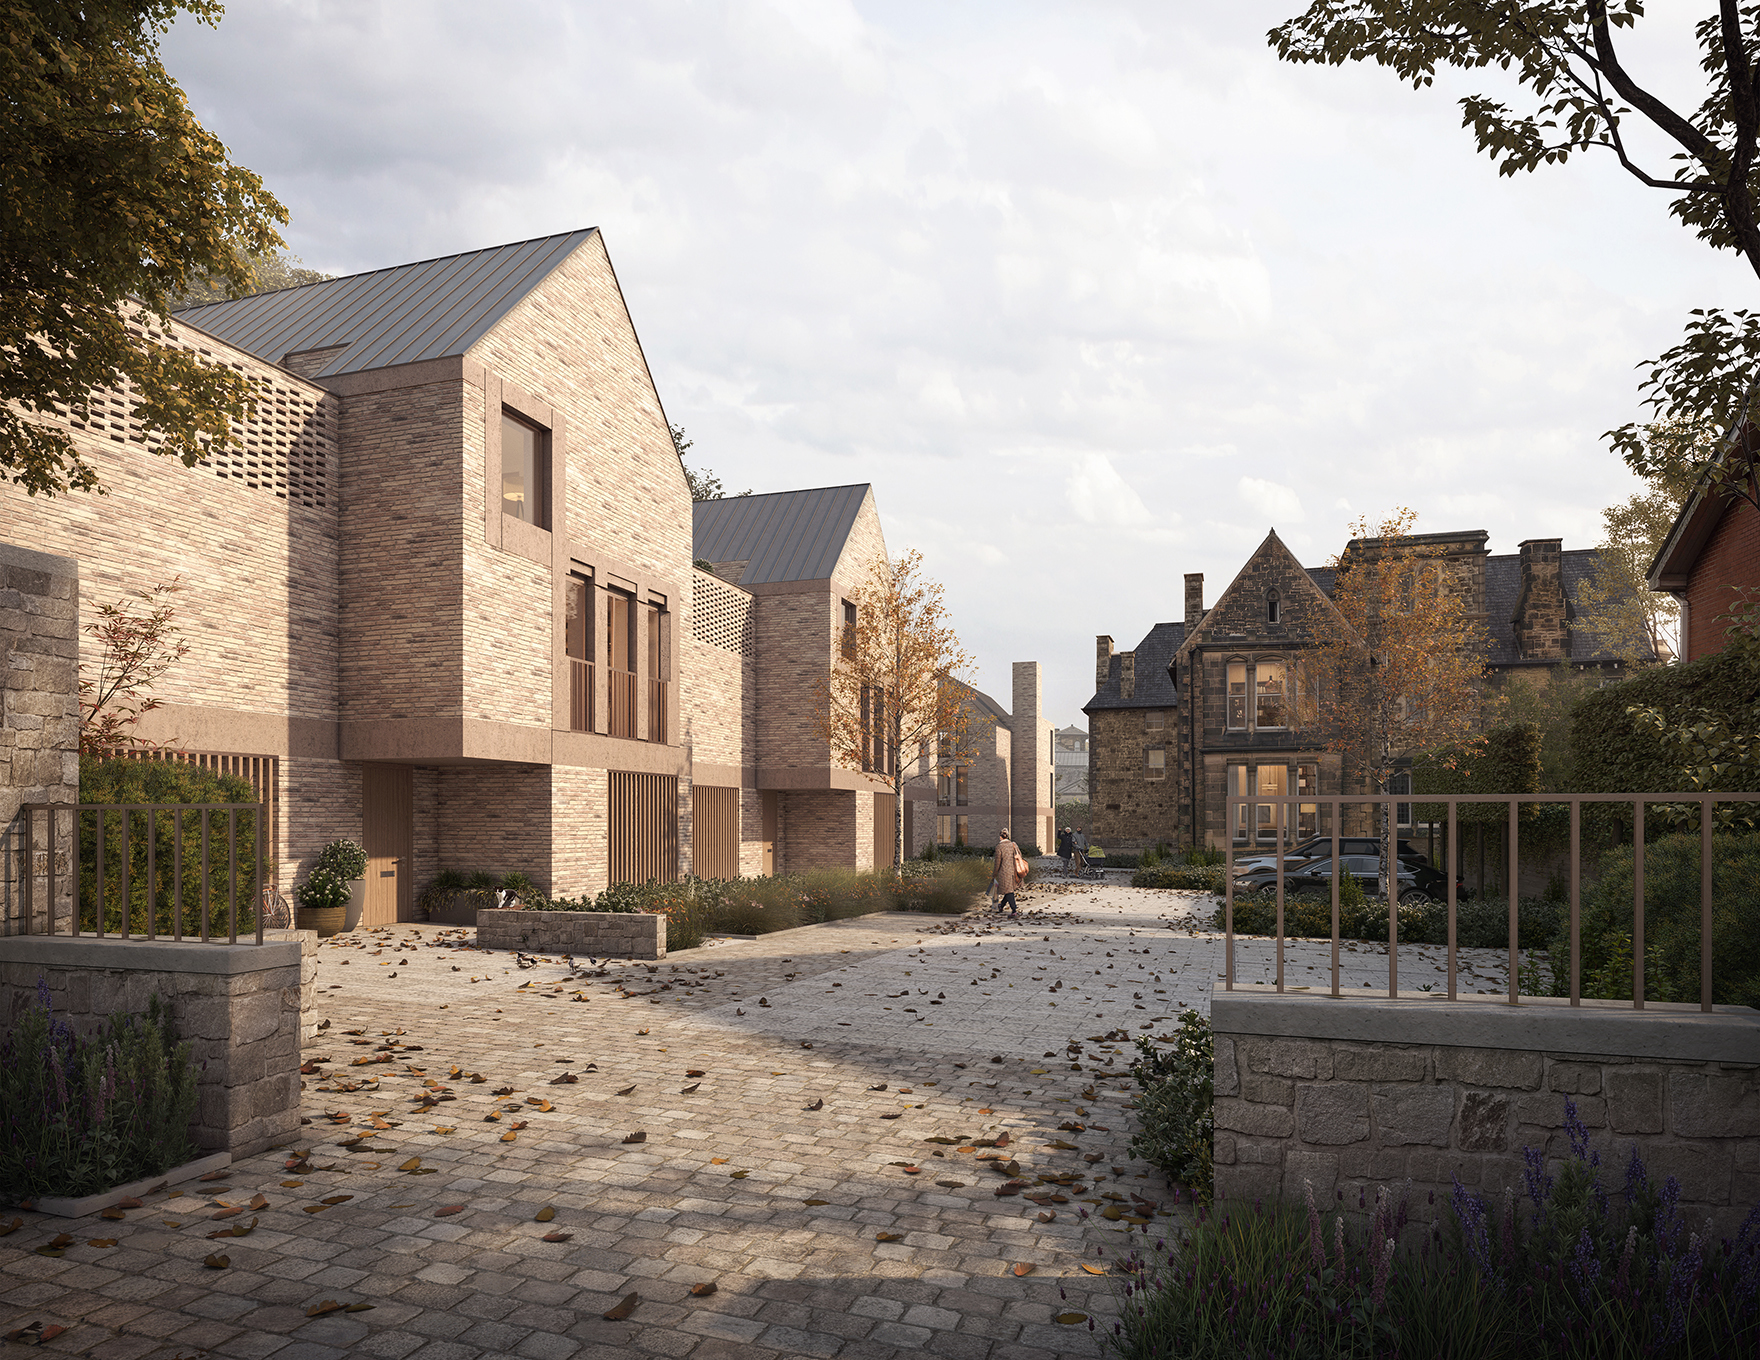 Ashfield Towers Faulknerbrowns Architects Housing Preservation Reuse Entrance View L